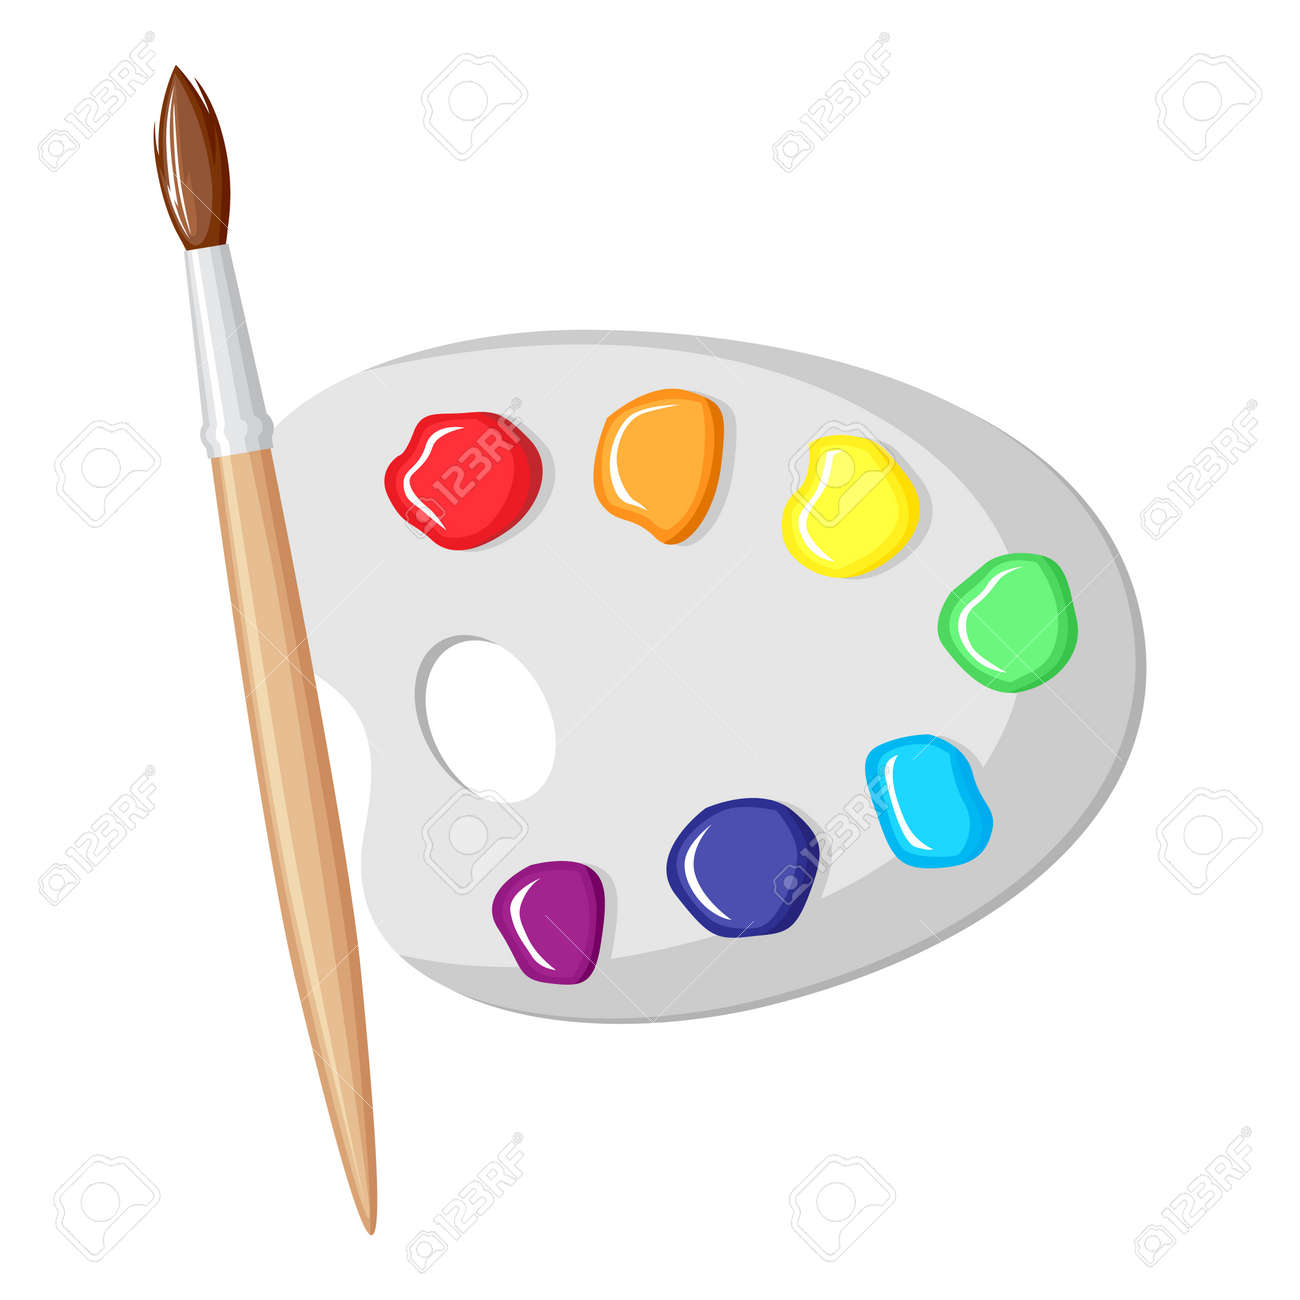 Vector Illustrations Of Cartoon Paintbrush And Palette Of Paints